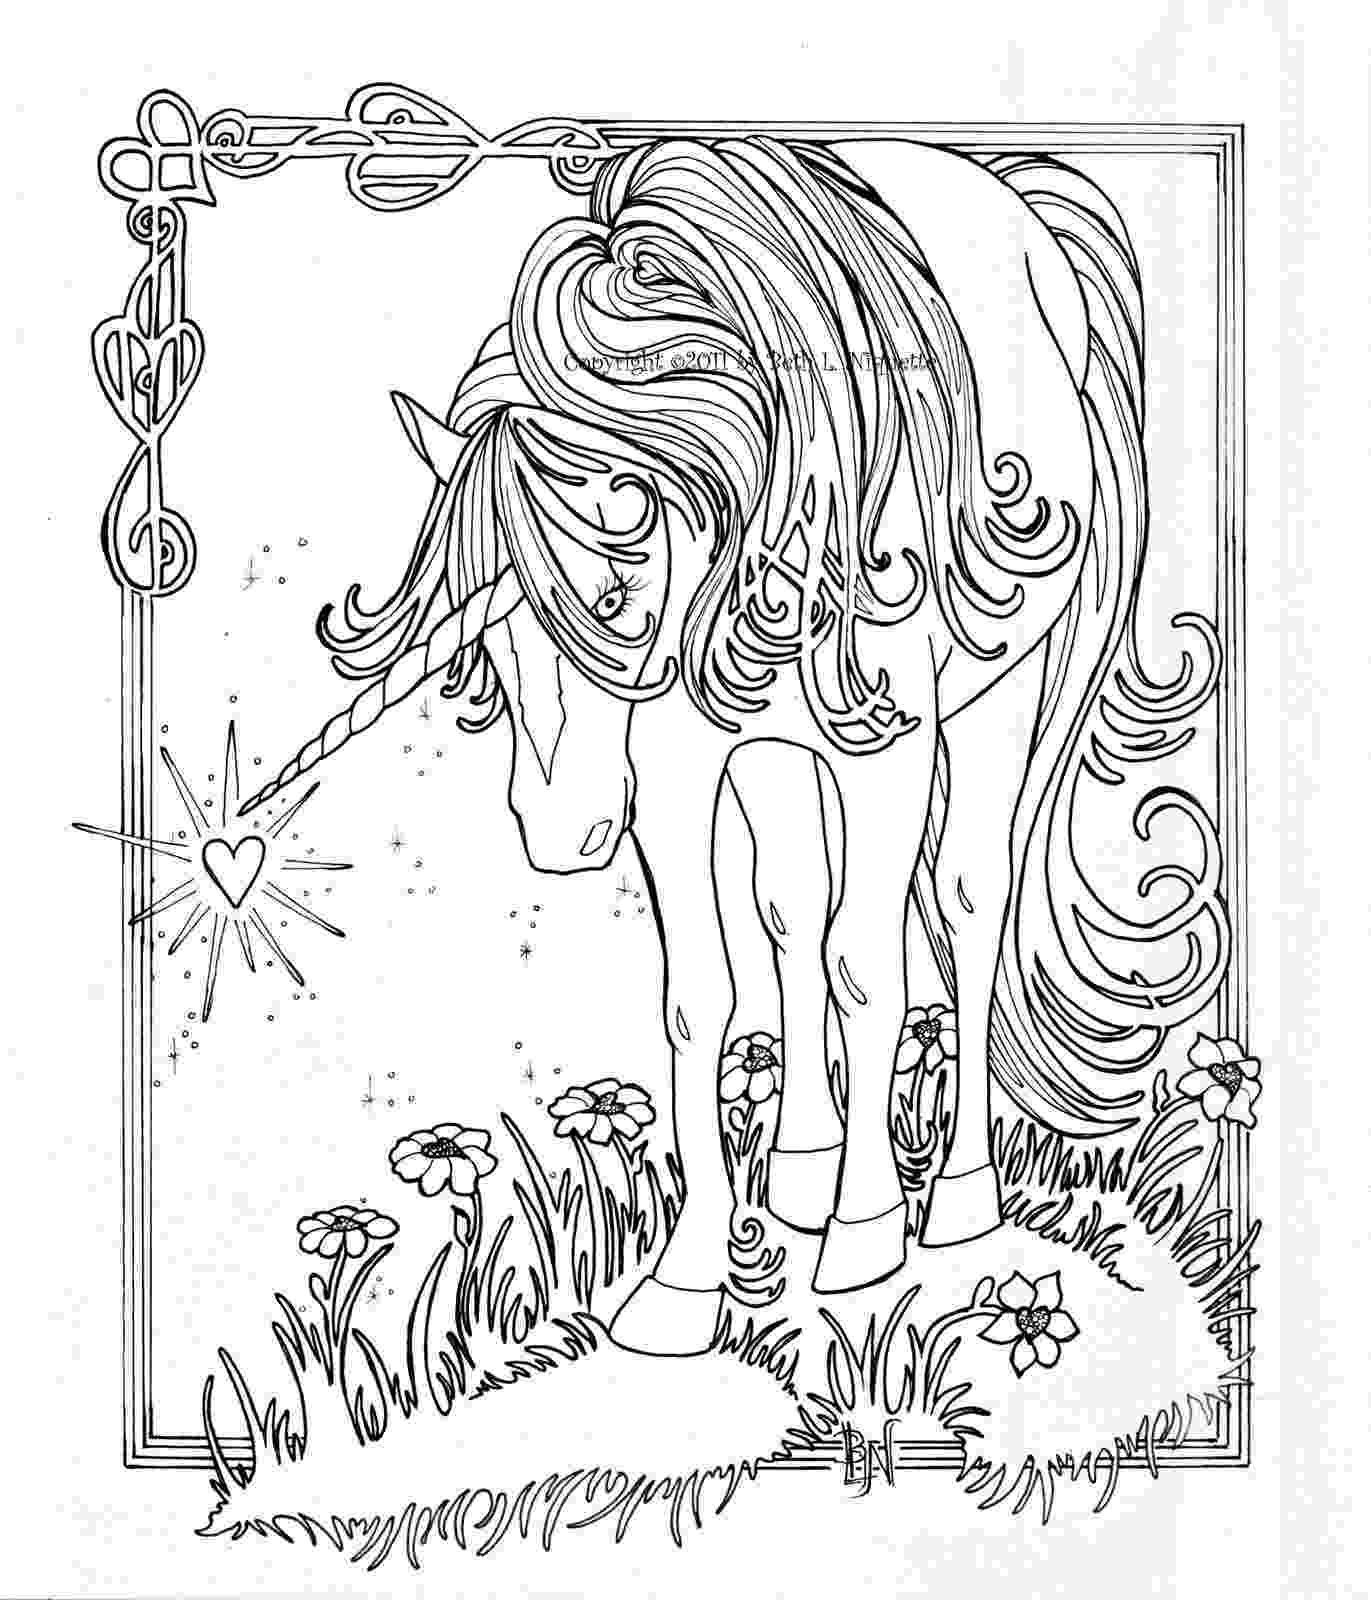 coloring pages for unicorns beth39s artworx august 2011 coloring pages for unicorns